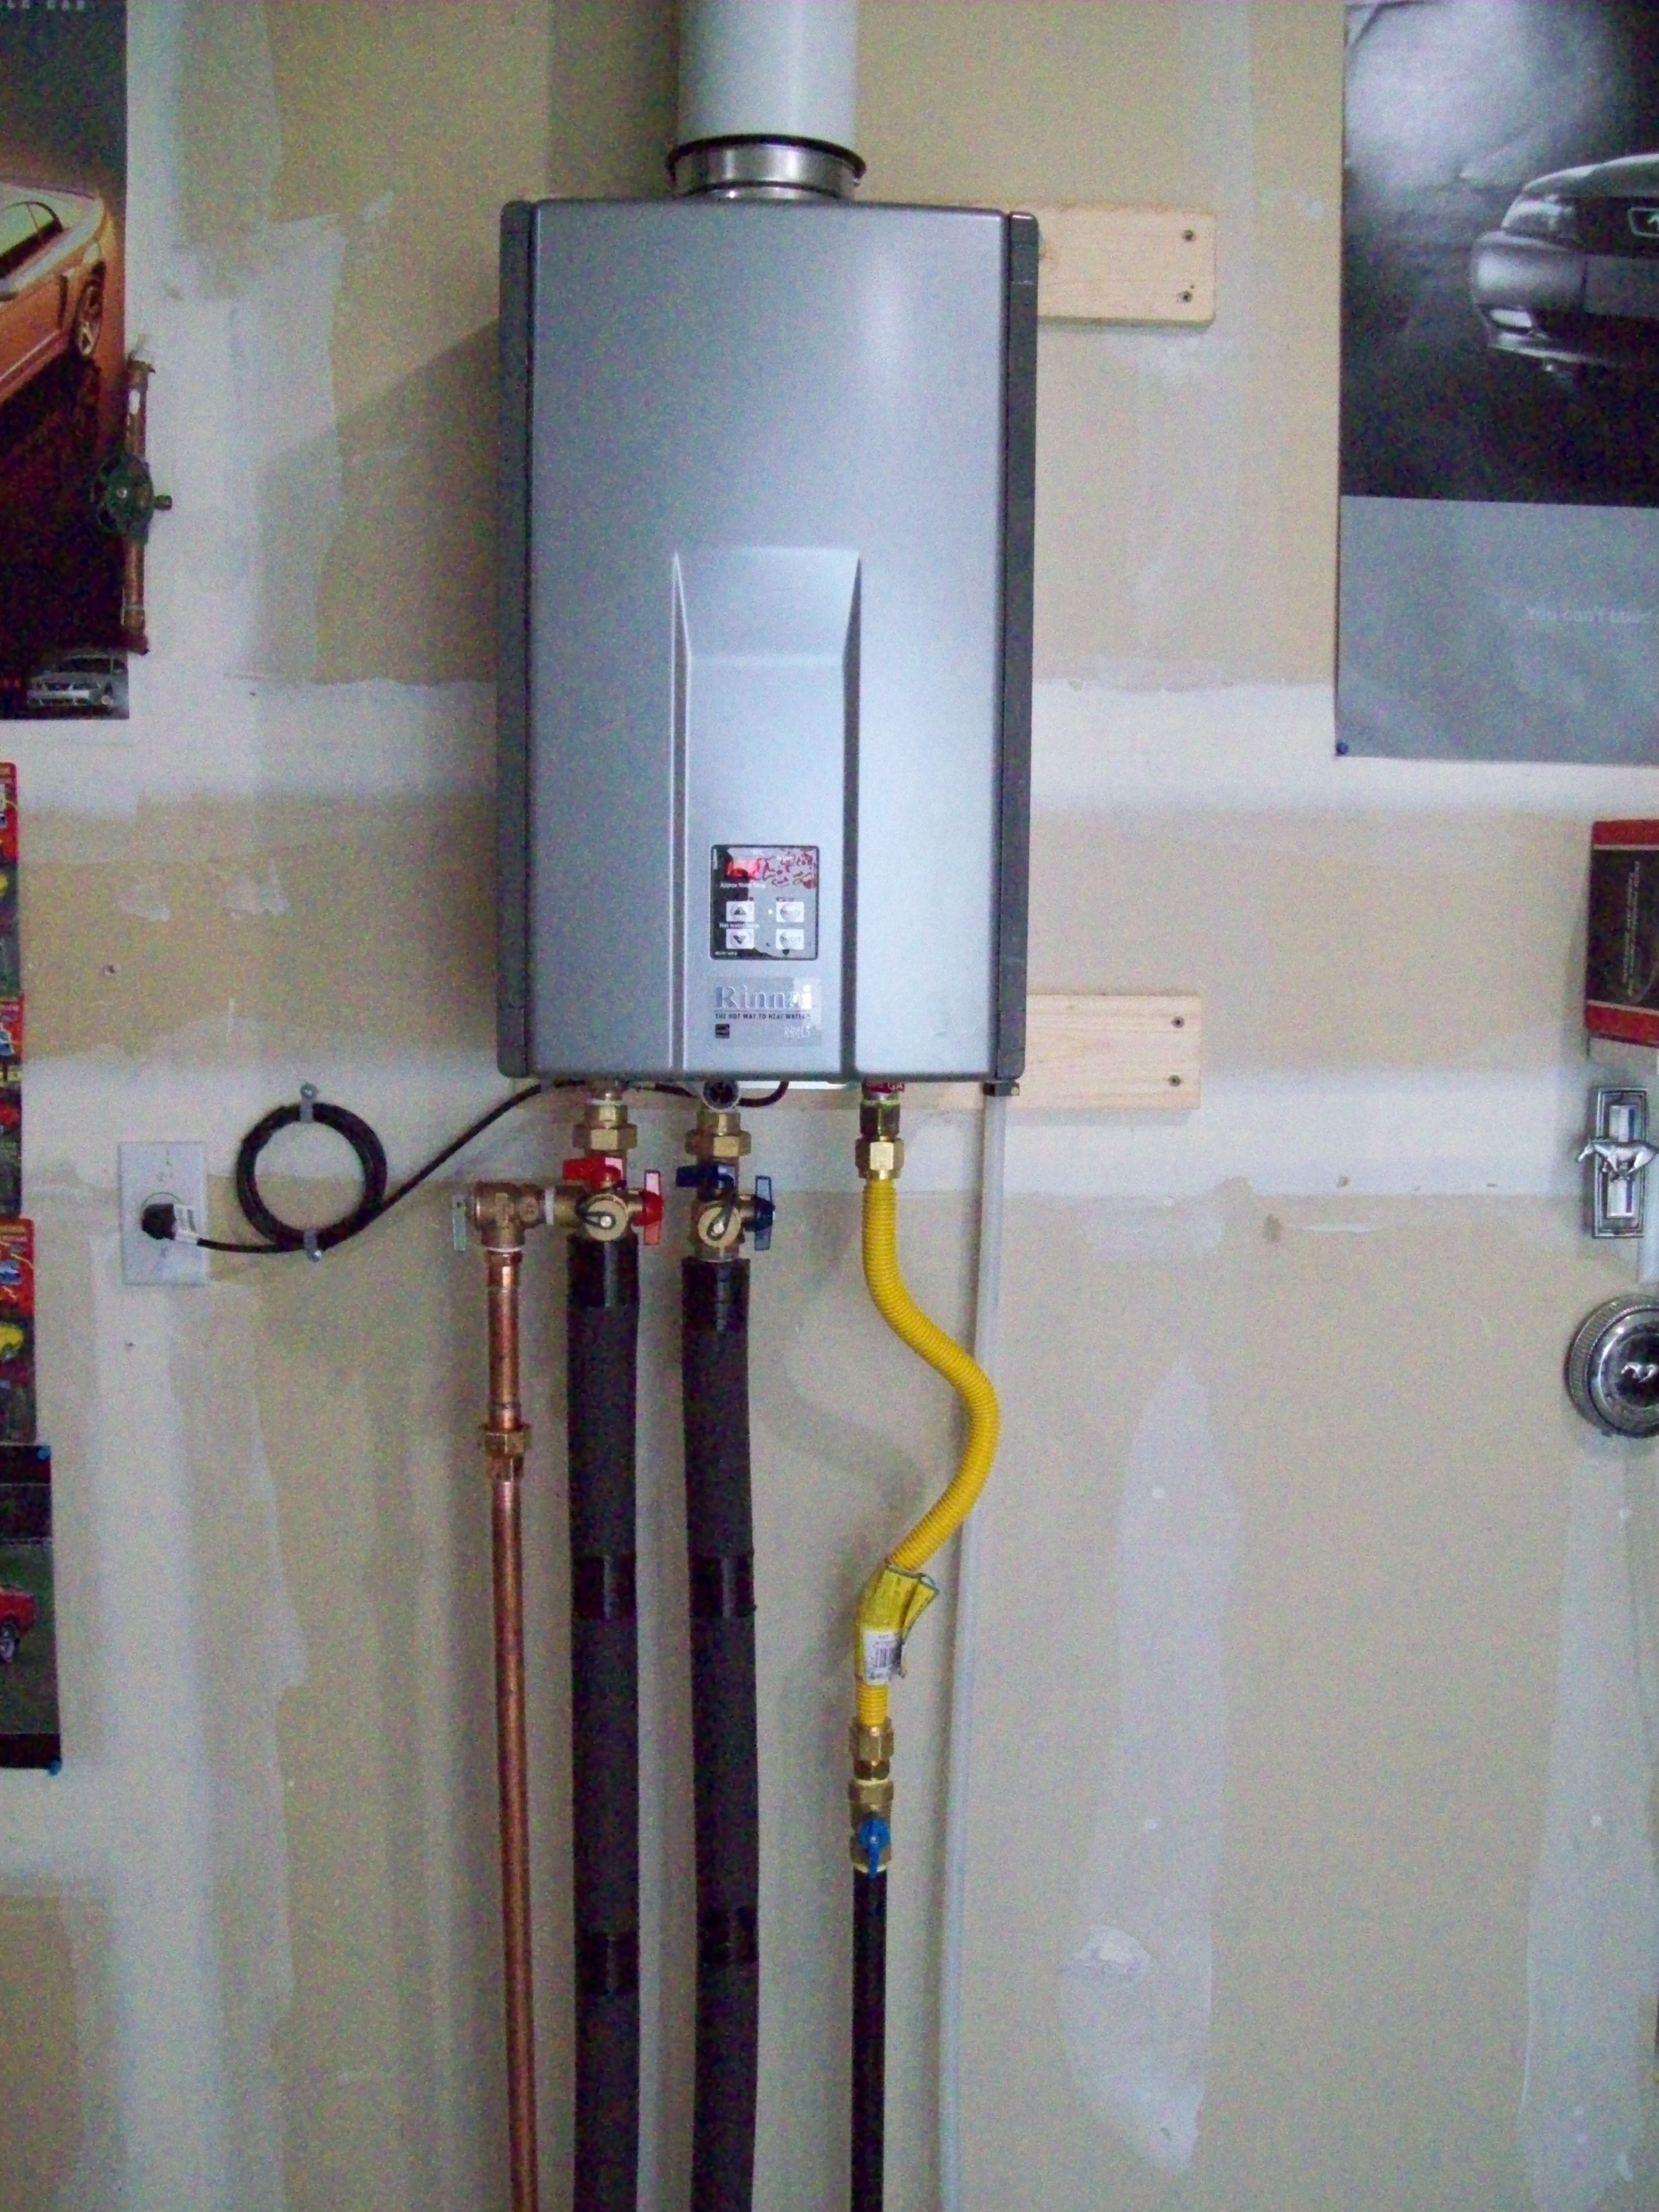 Riobel coaxial shower system north central plumbing amp heating ltd - Riobel Coaxial Shower System North Central Plumbing Amp Heating Ltd Download